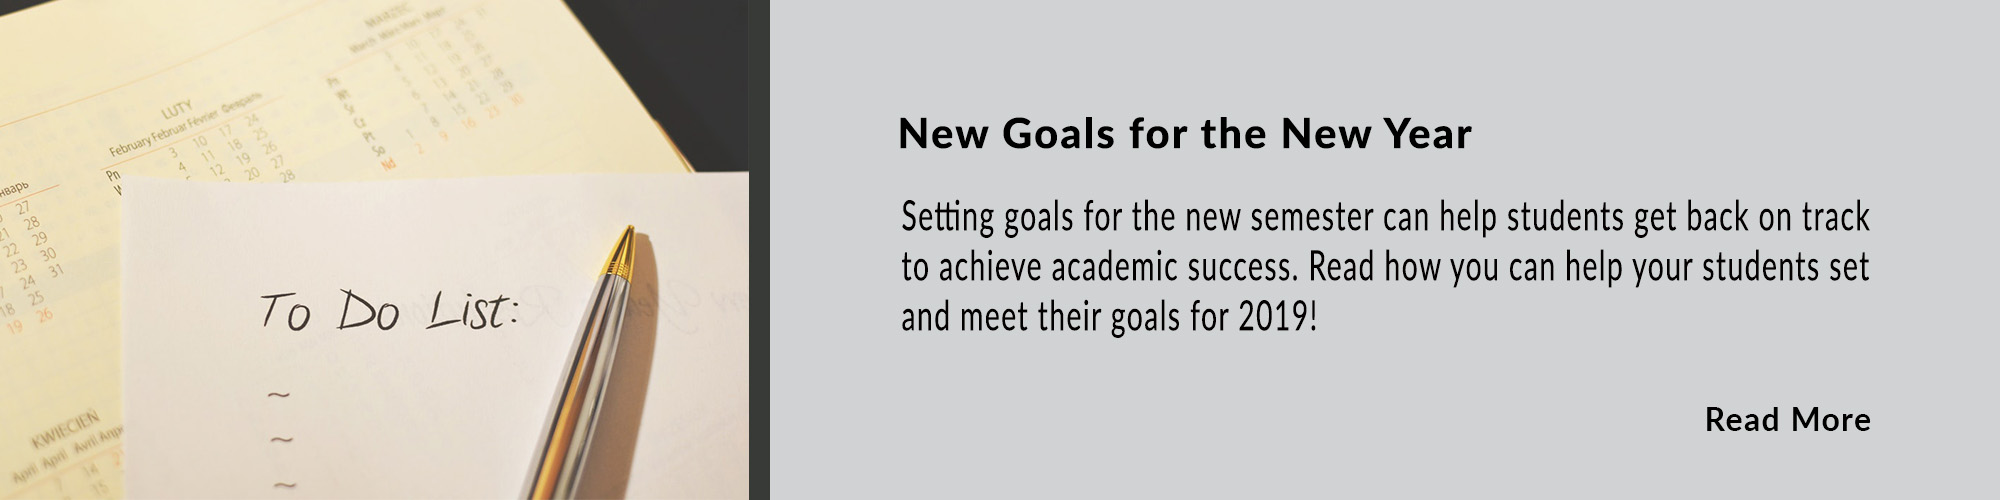 To-Do List setting goals for new year